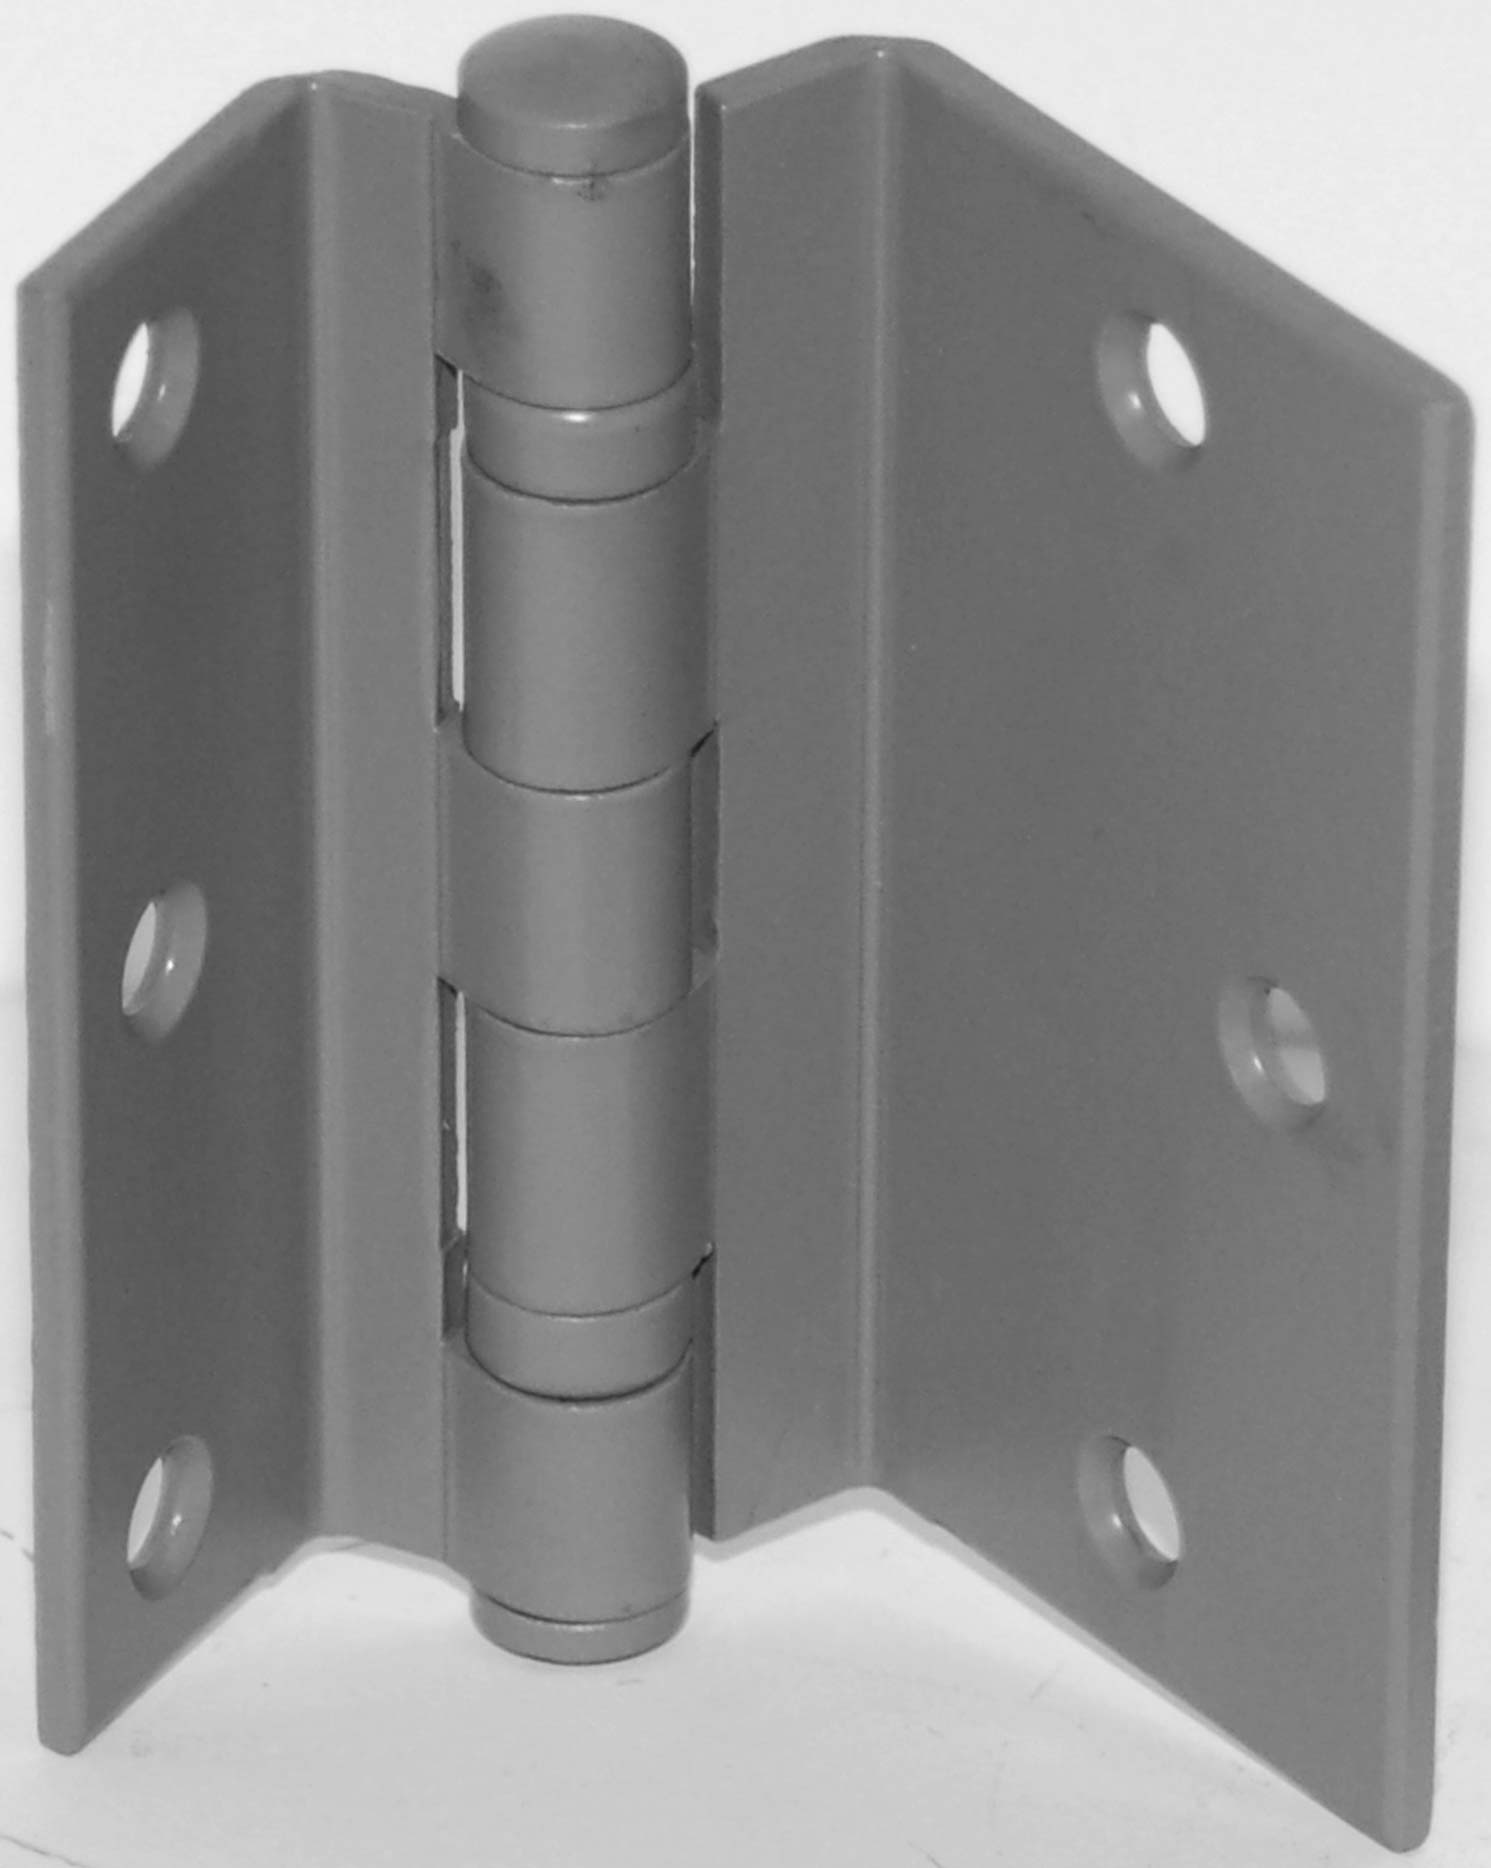 Full Surface And Half Mortise Hinges